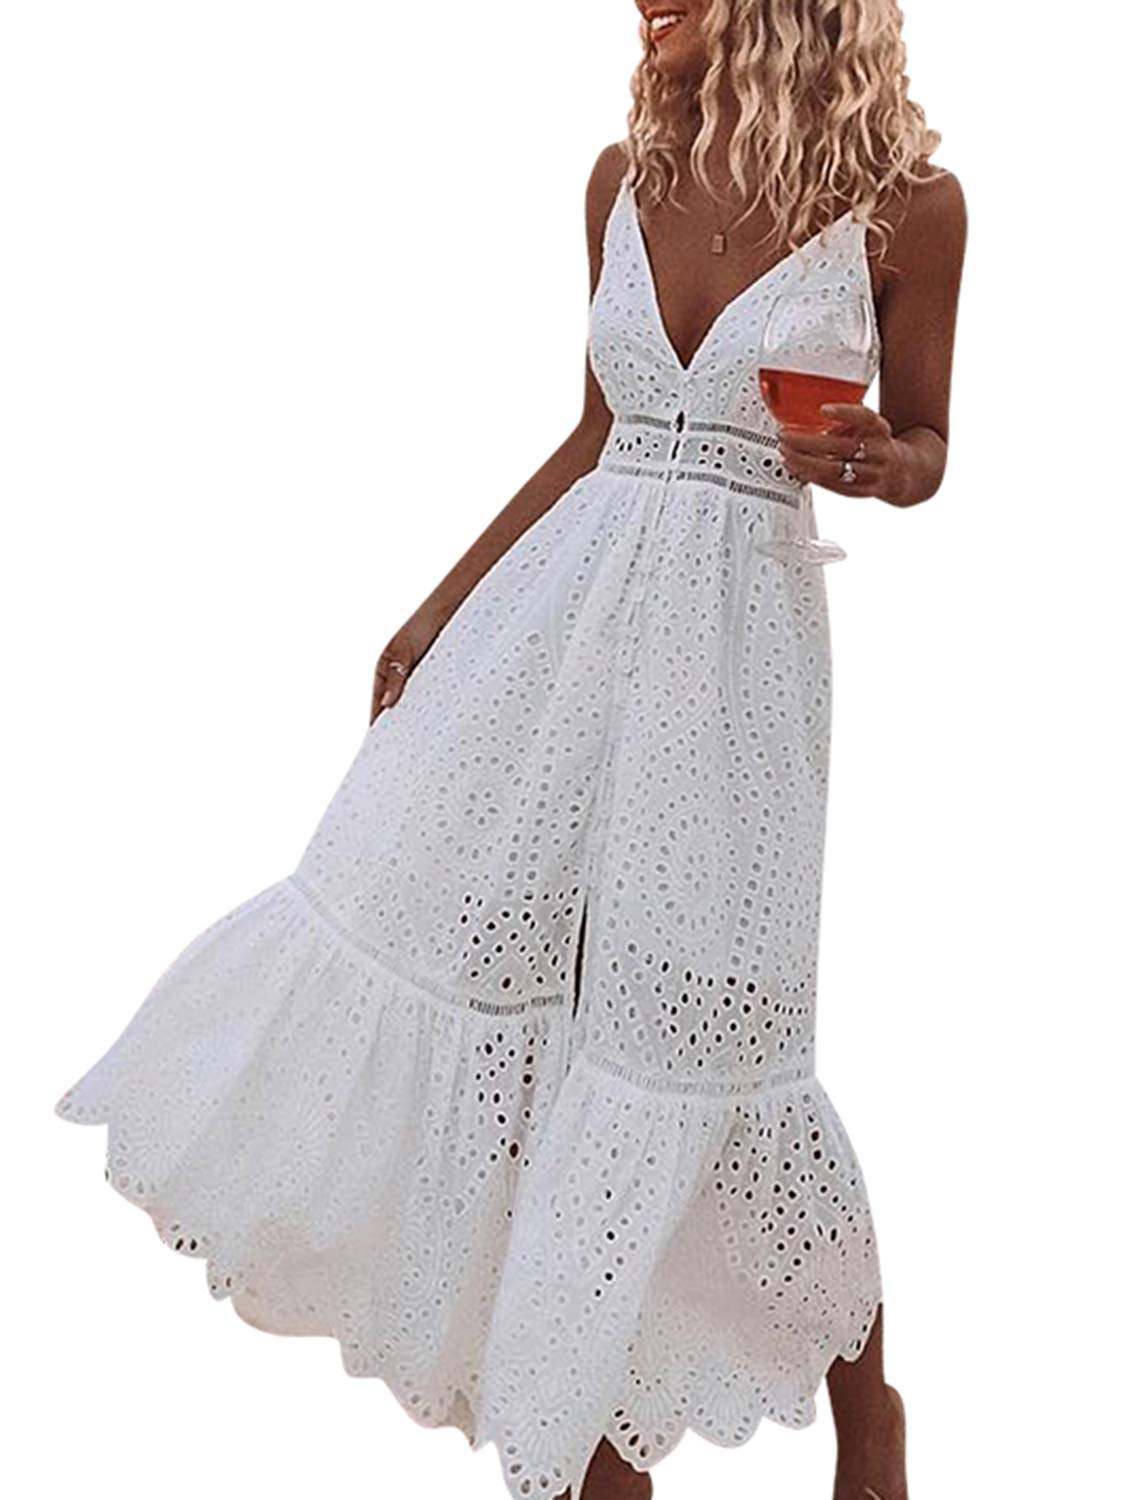 White Dress - Women's Summer Sexy One Shoulder Ruffle Bodycon Midi Cocktail Dress